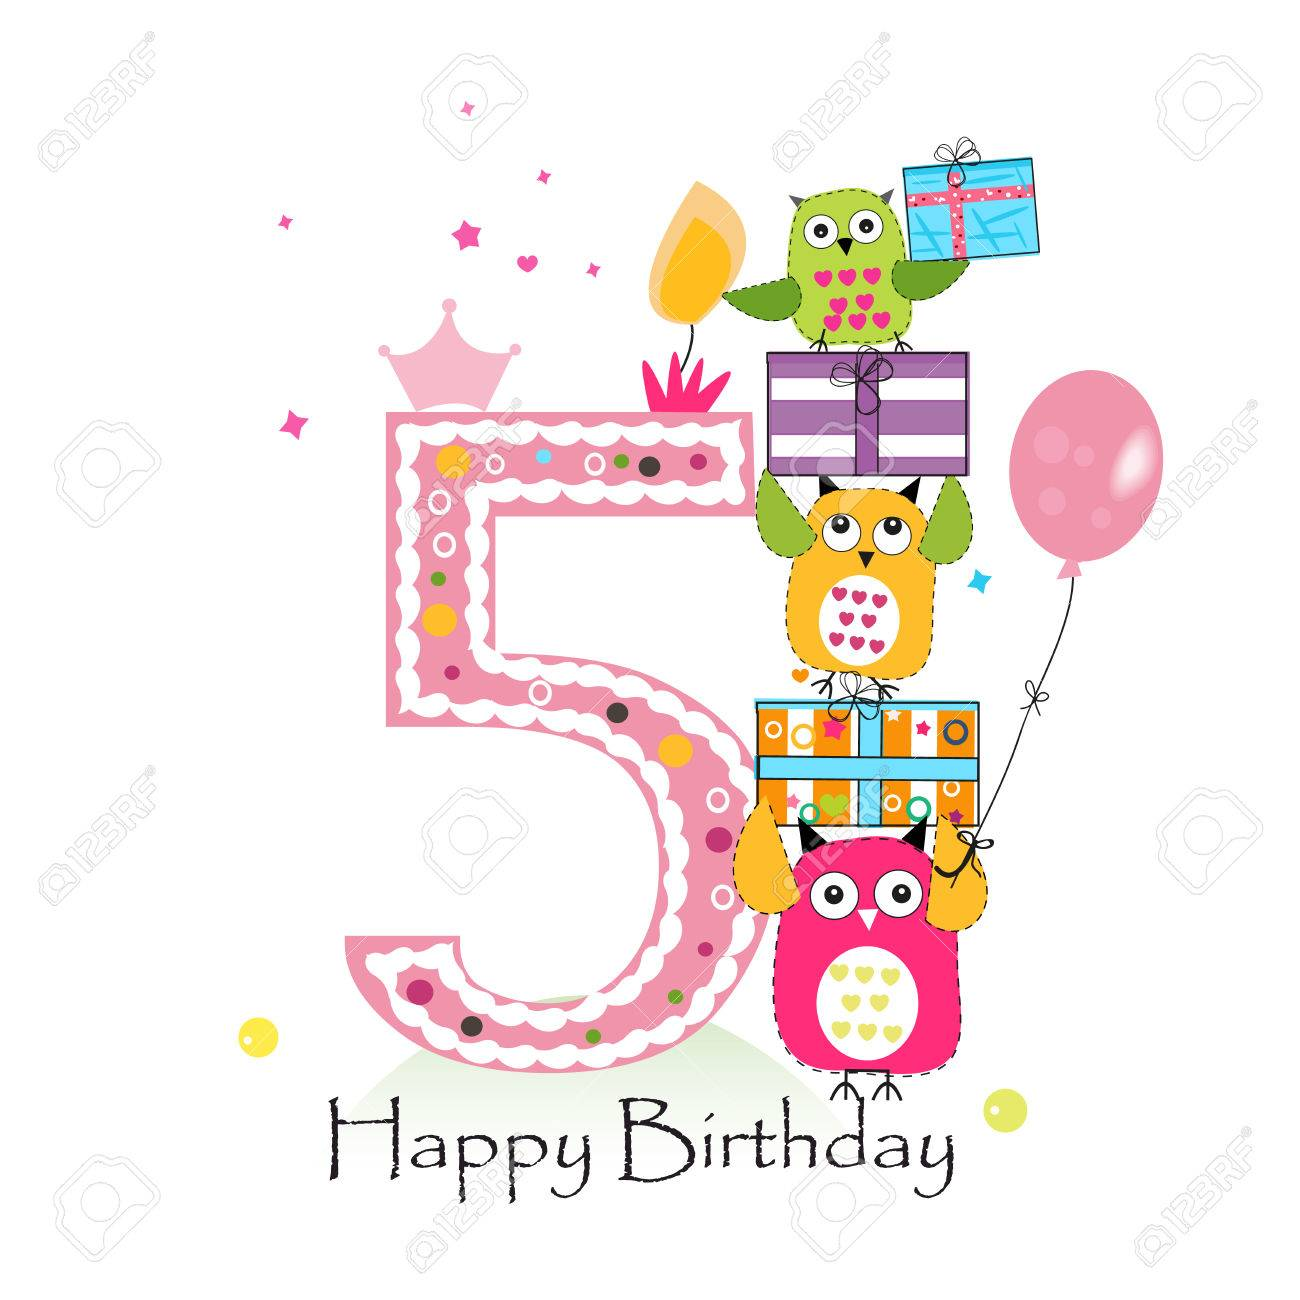 Happy Fifth Birthday With Owls And Gift Box Baby Girl Birthday Royalty Free Cliparts Vectors And Stock Illustration Image 66080316